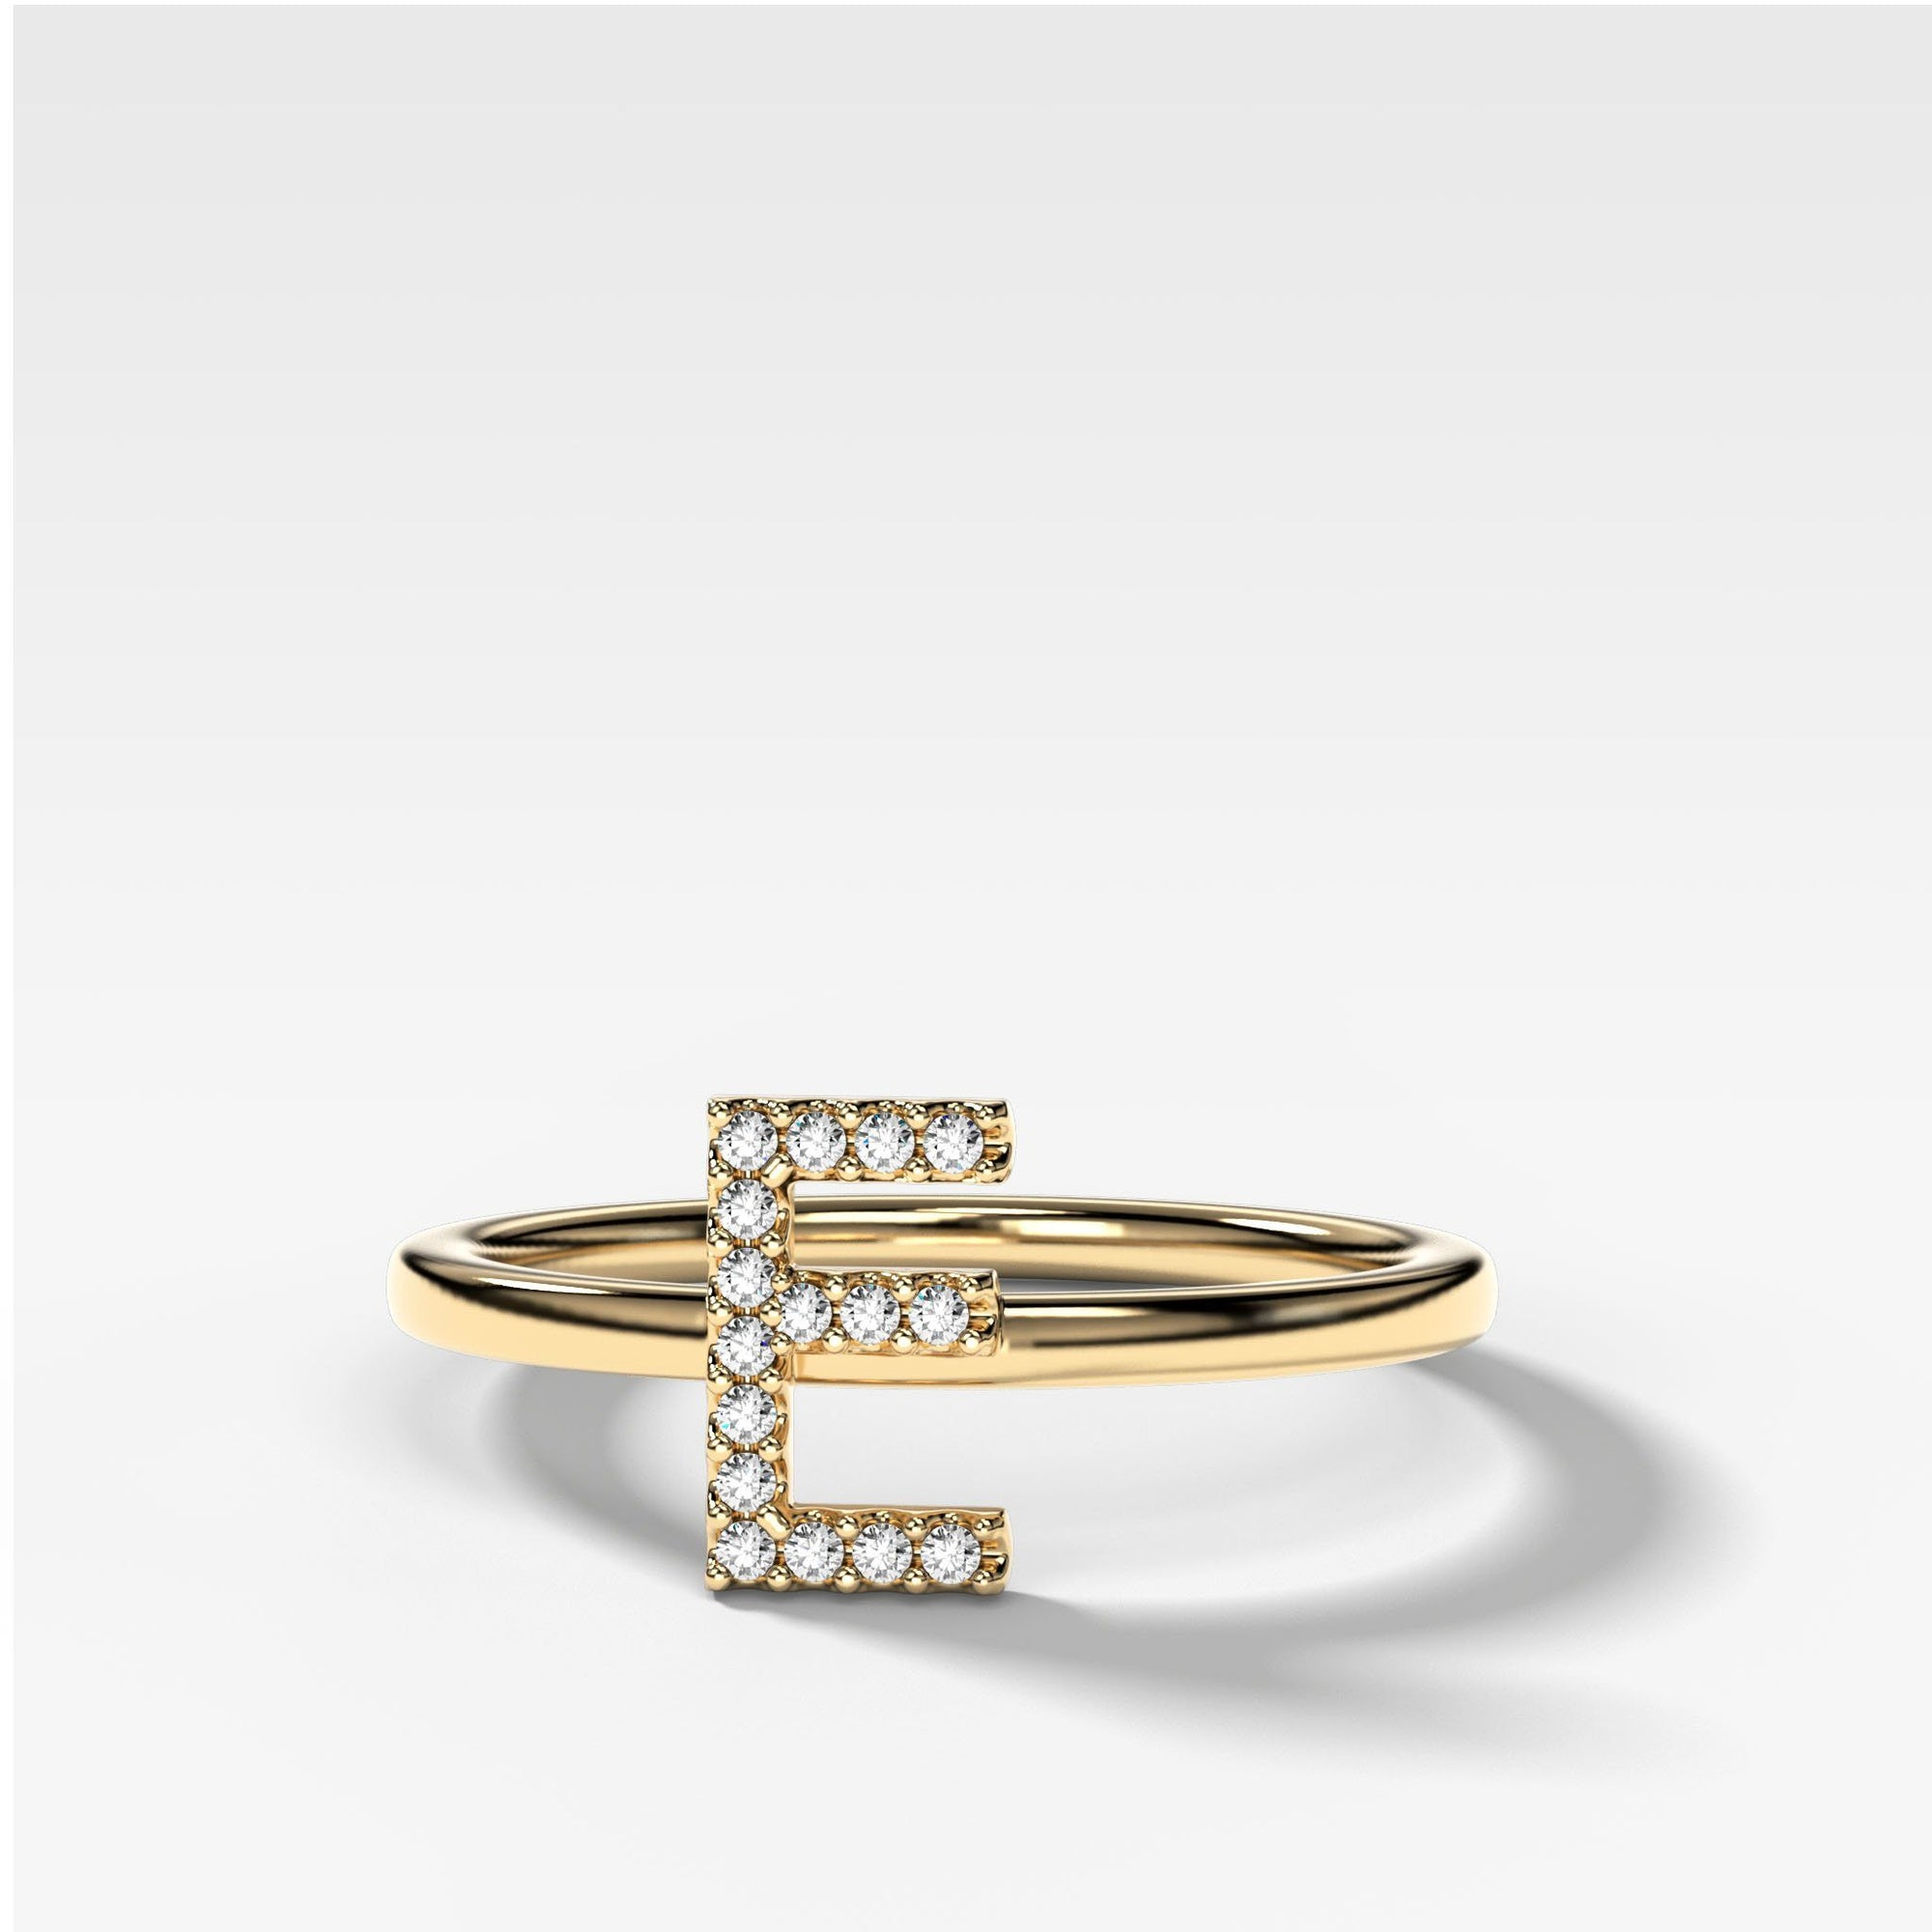 Initial Ring in Yellow Gold by Good Stone